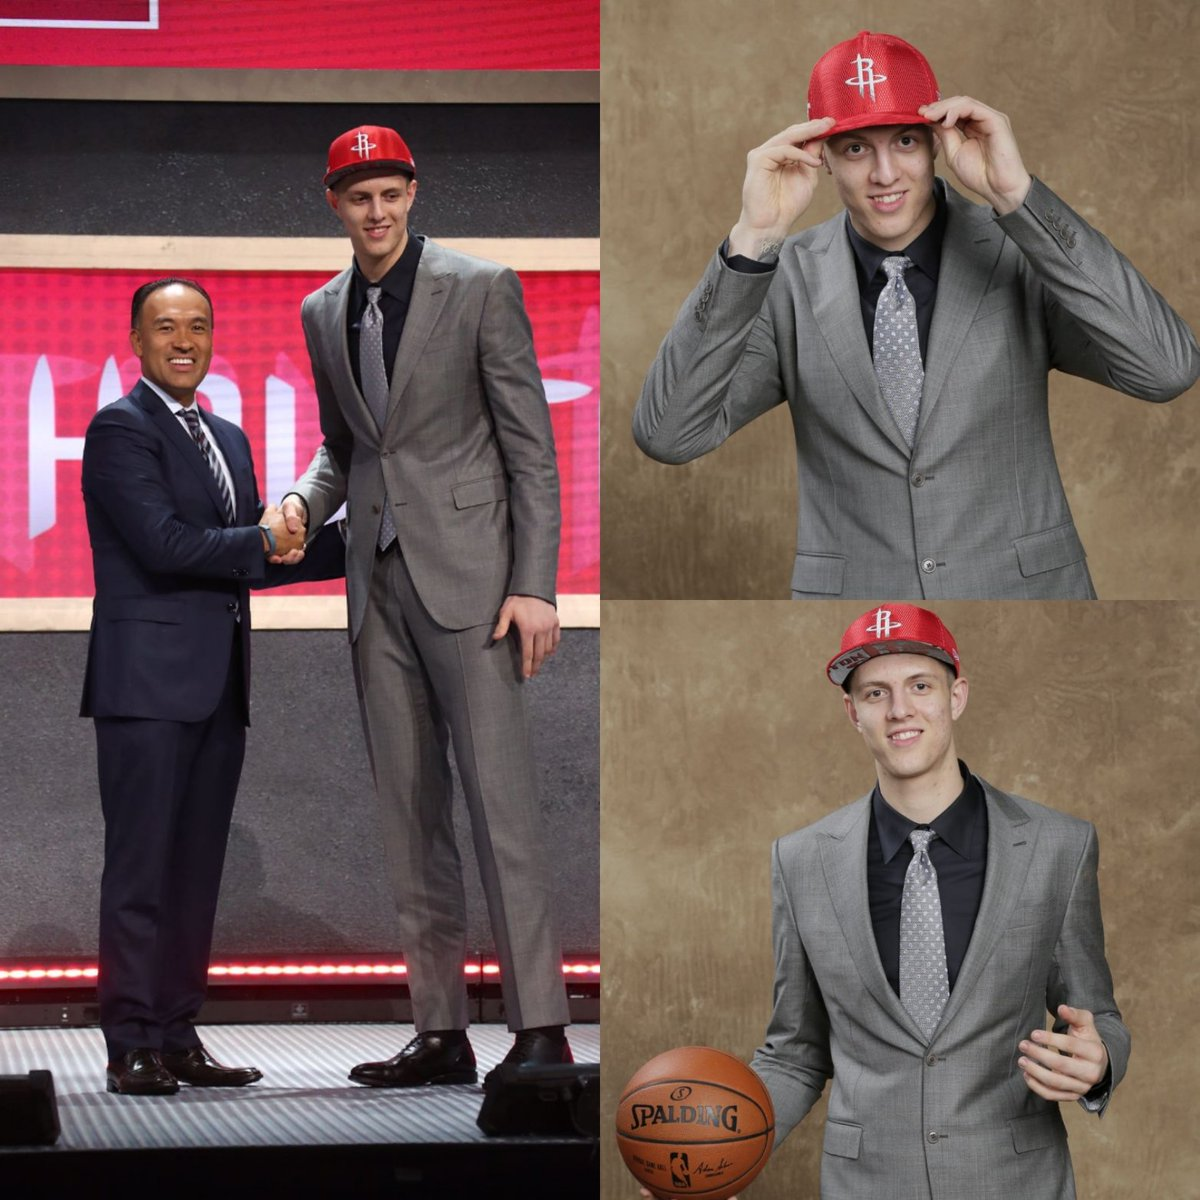 Last night we selected German 7-footer Isaiah Hartenstein with the 43rd pick. Give him a follow at @Ipjh55 to welcome him to #RedNation